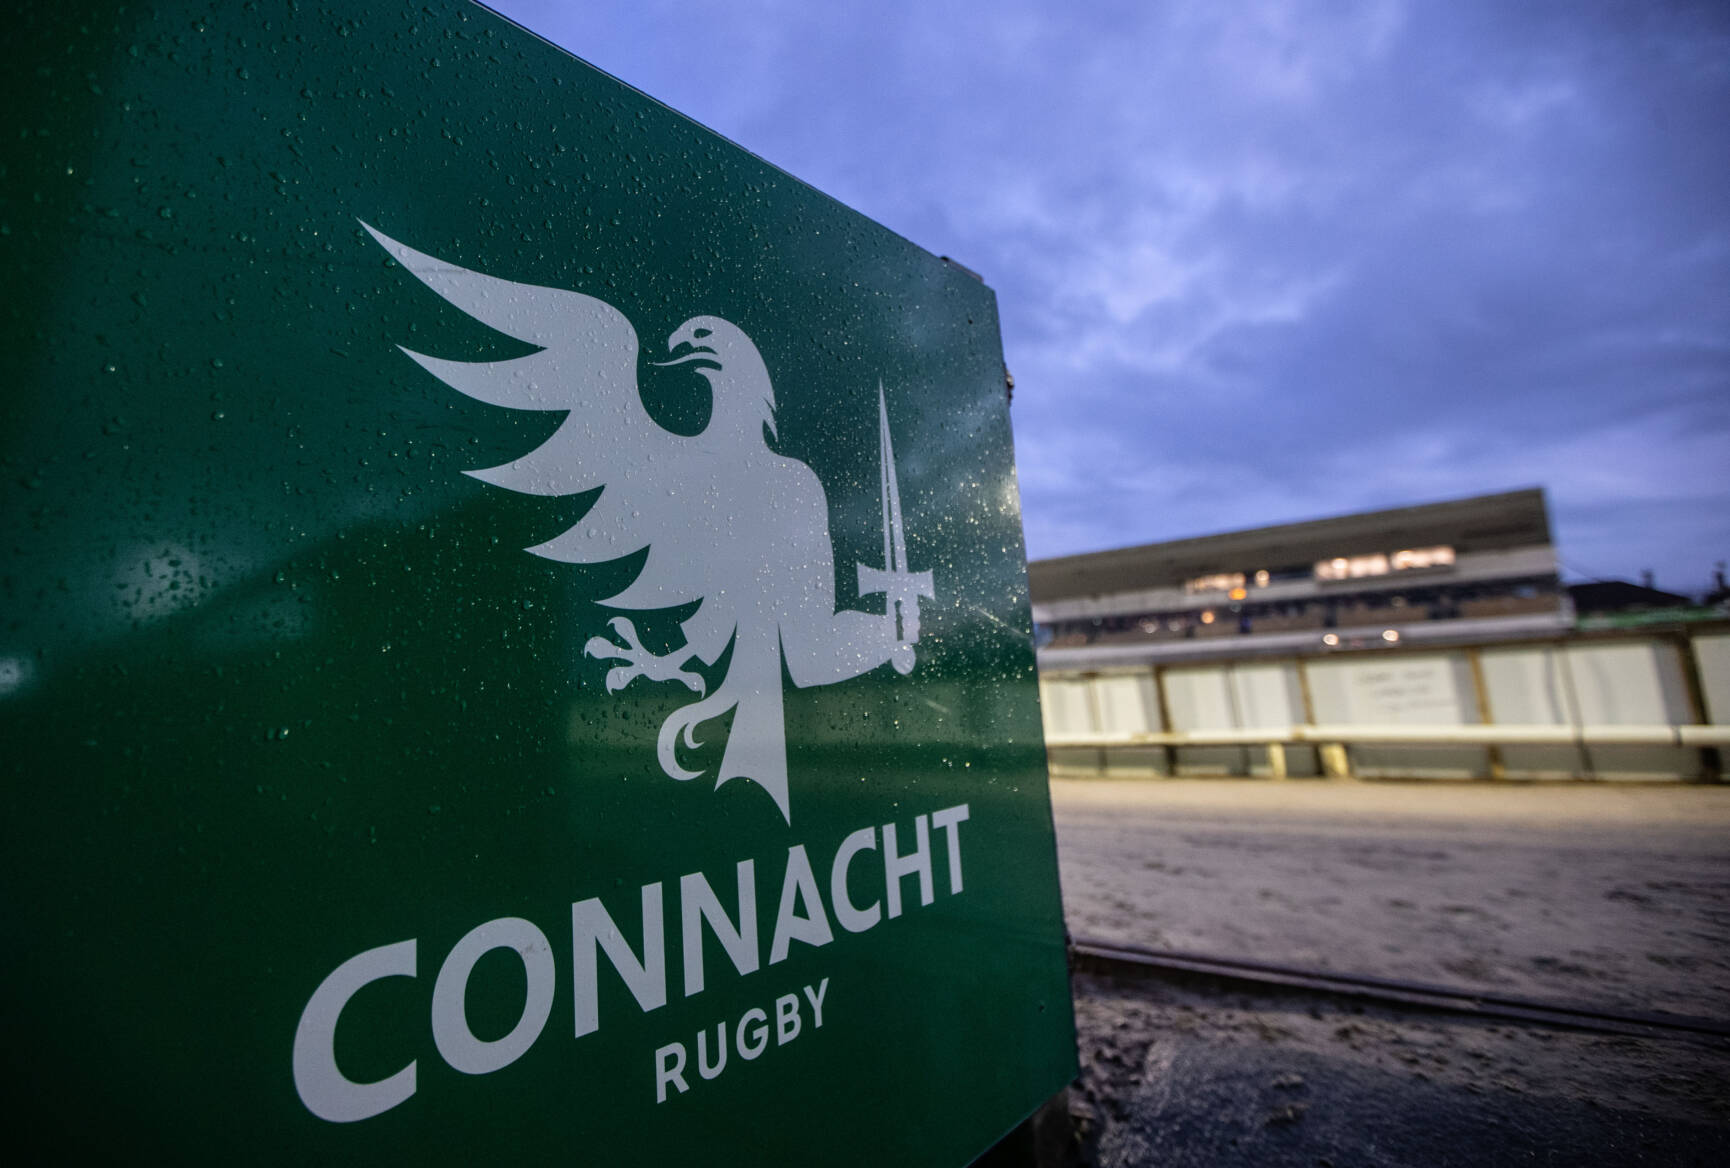 Connacht Announce Signings Of Ben O'Donnell And Abraham Papali'i